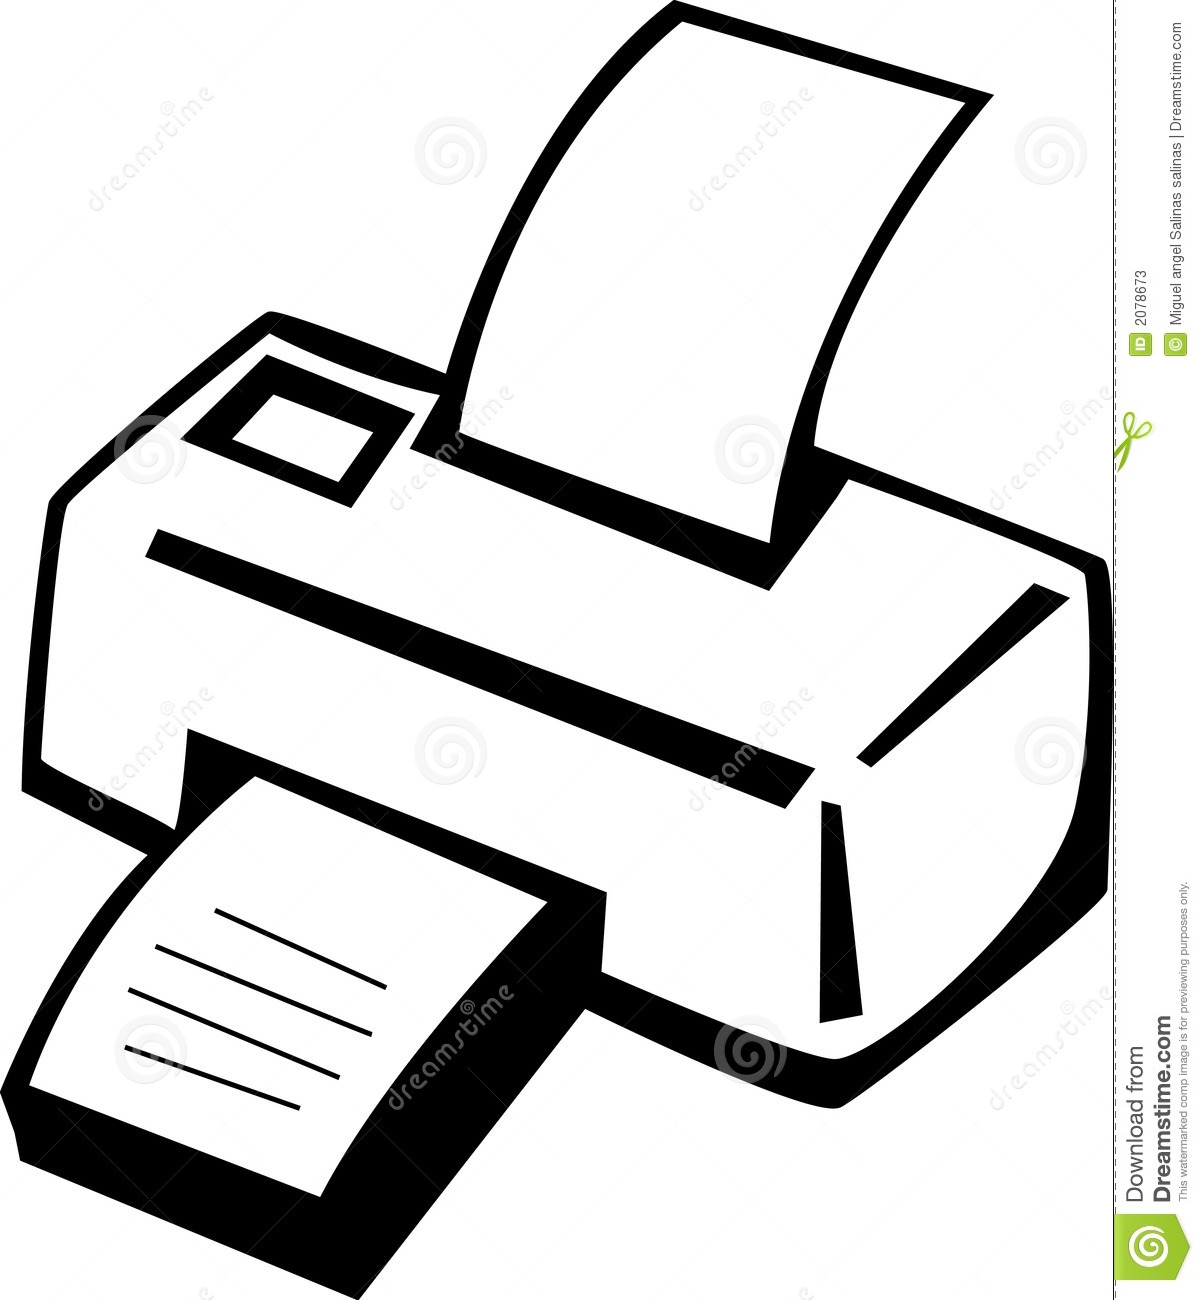 computer printer clipart black and white 9 clipart station rh clipartstation com print clip art on envelopes printing clip art